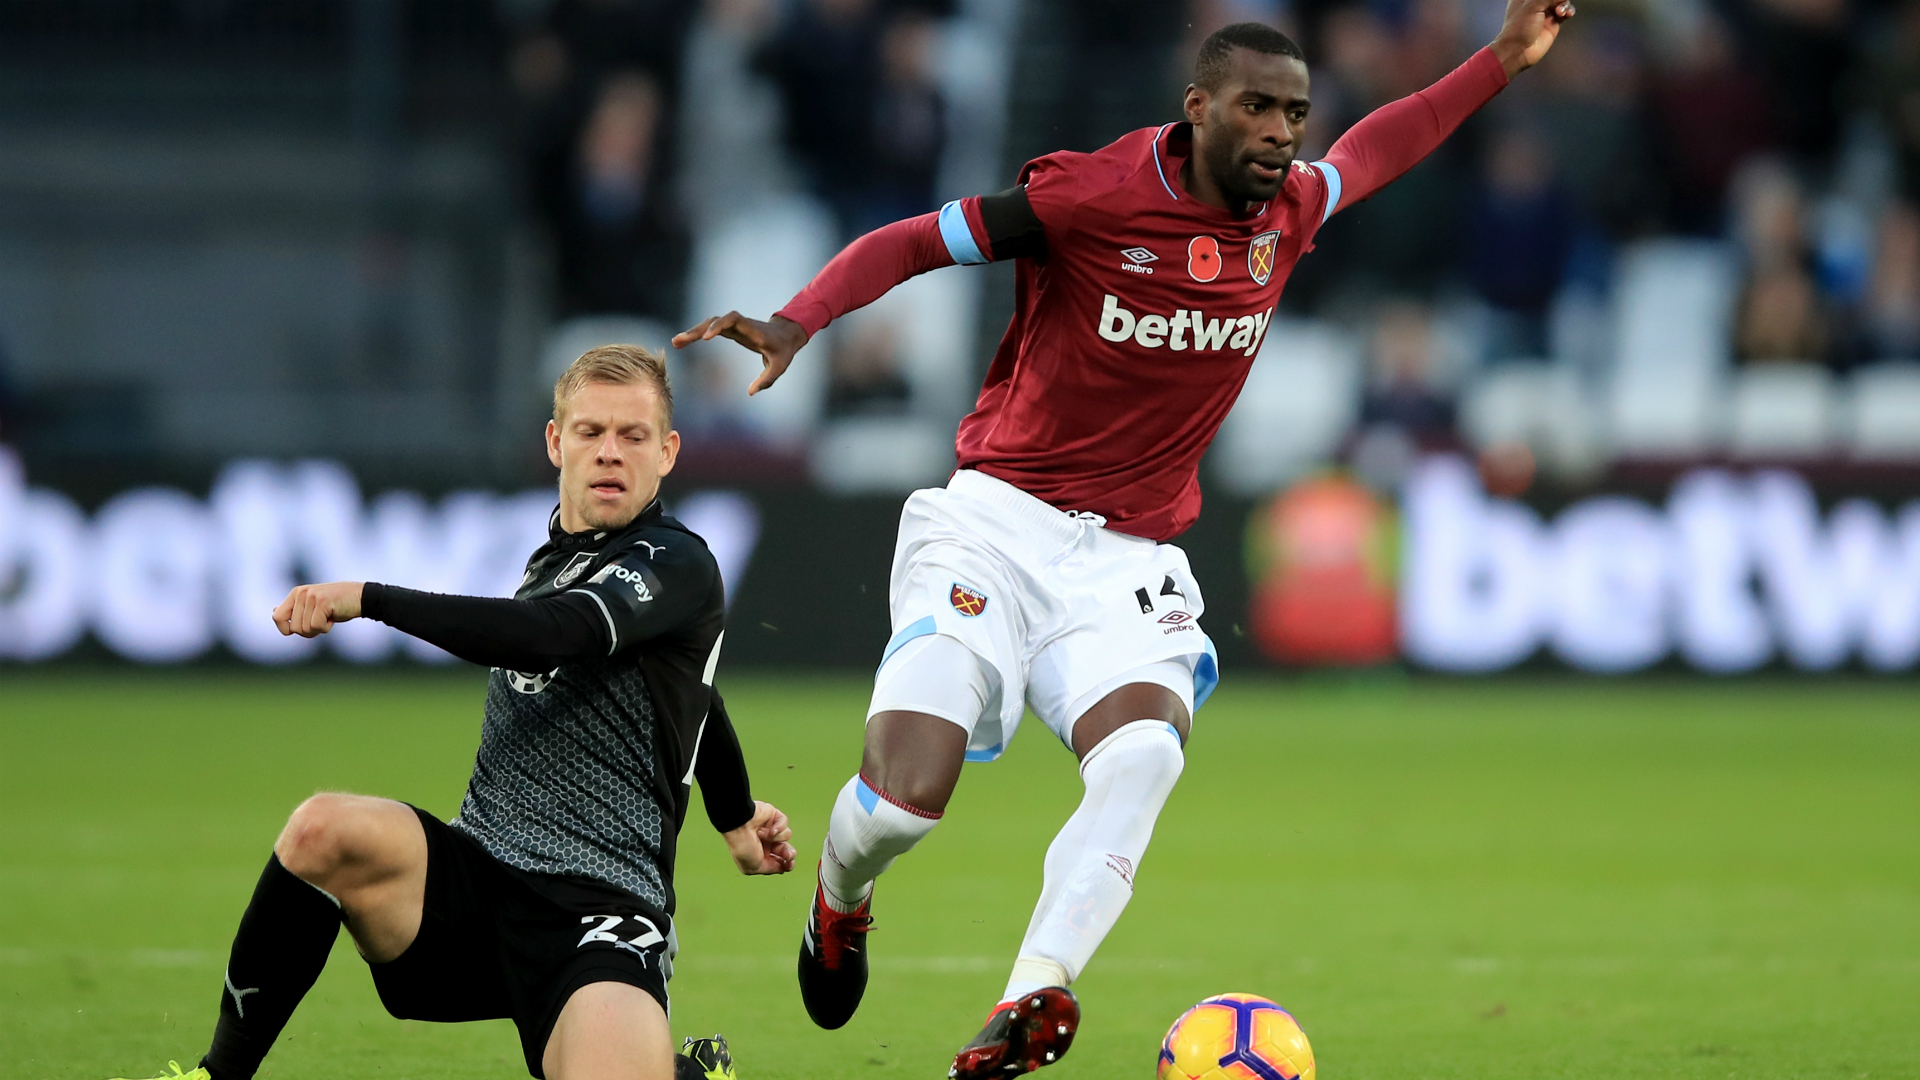 West Ham boss Pellegrini confirms Obiang's imminent move to Italy